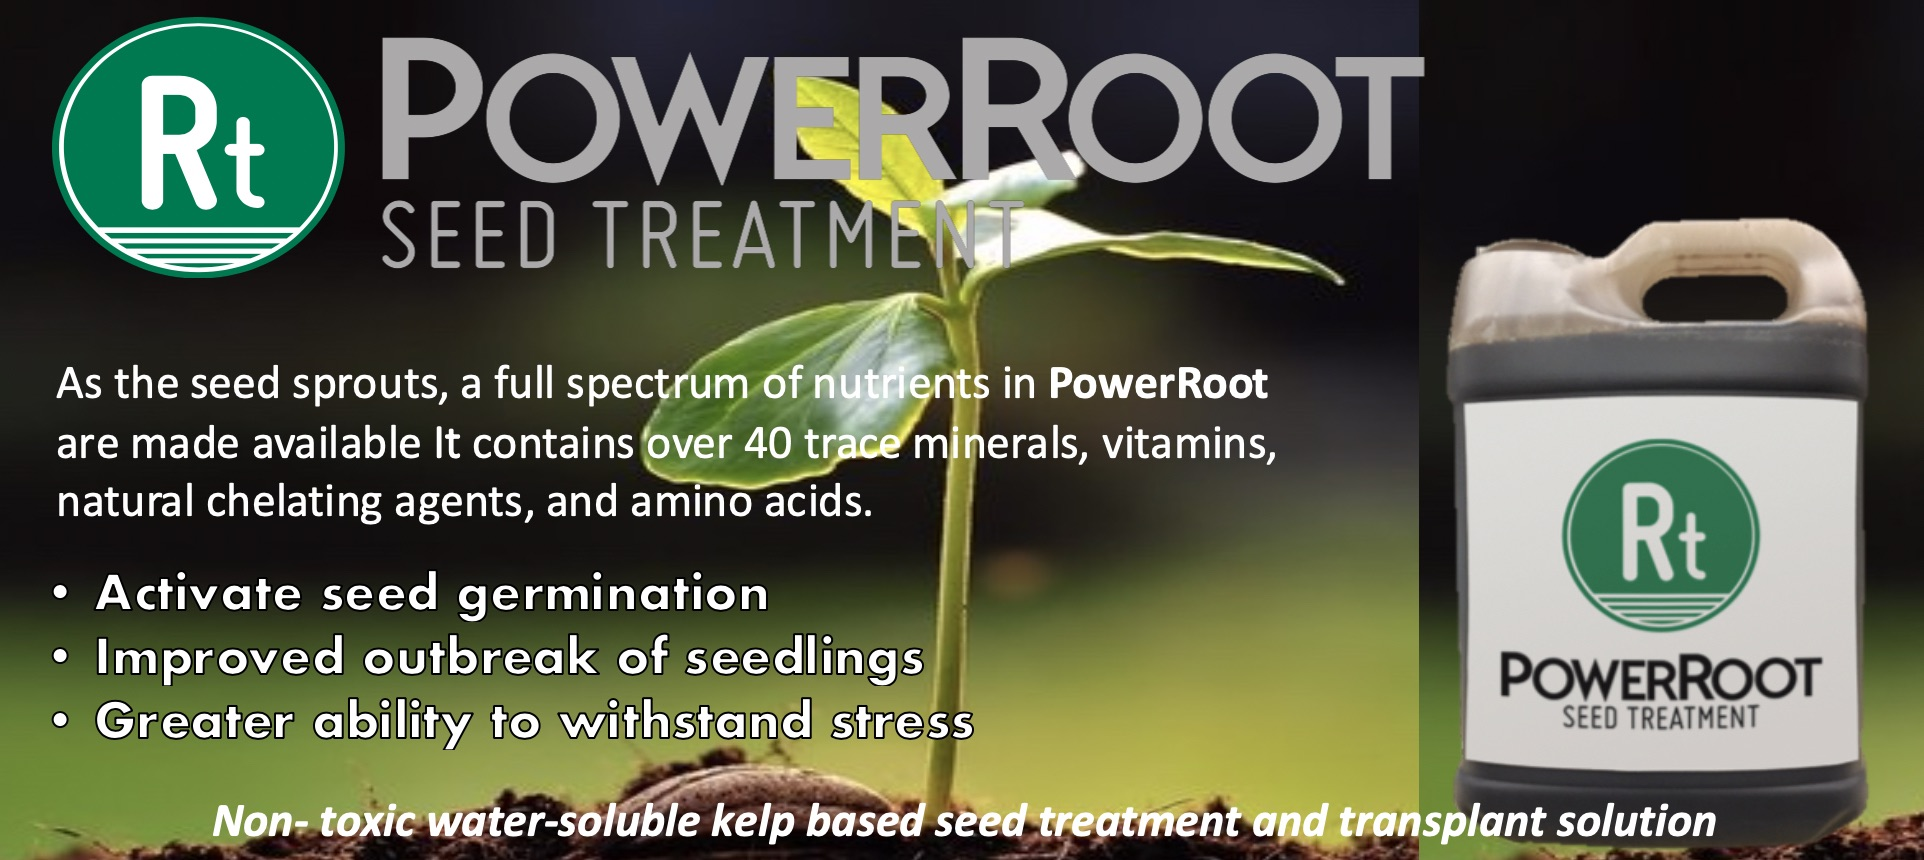 PowerRoot Seed Treatment - As the seed sprouts, a full spectrum of nutrients in PowerRoot are made available. It contains over 40 trace minerals, vitamins, natural chelating agents, and amino acids. Activate seed germination; Improved outbreak of seedlings; greater ability to withstand stress. Non-toxic water-soluble kelp based seed treatment and transplant solution